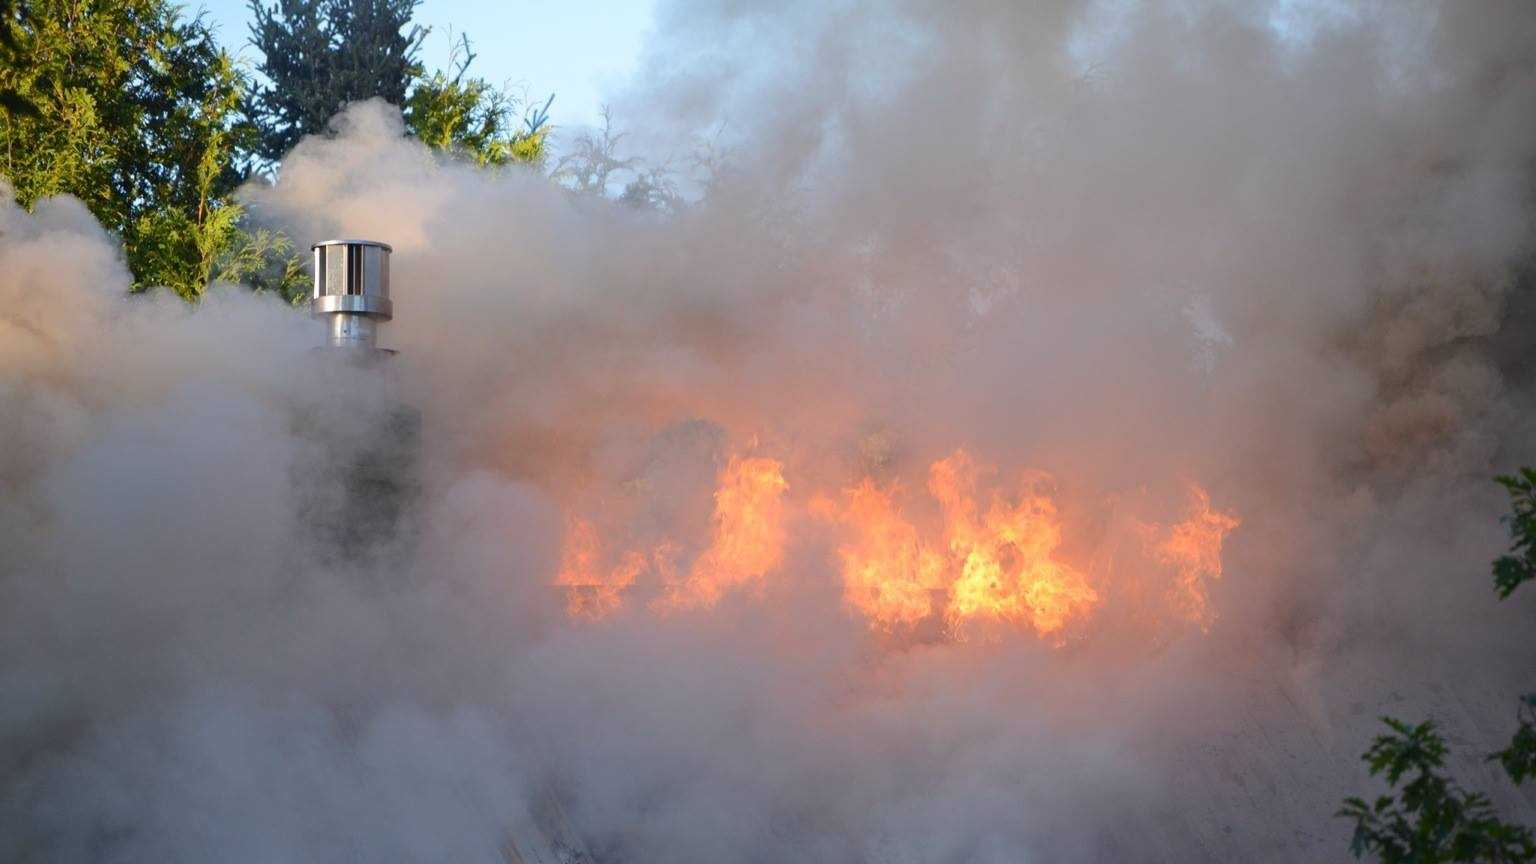 Fire at 1306 Stagecoach Road, Morristown, Vermont